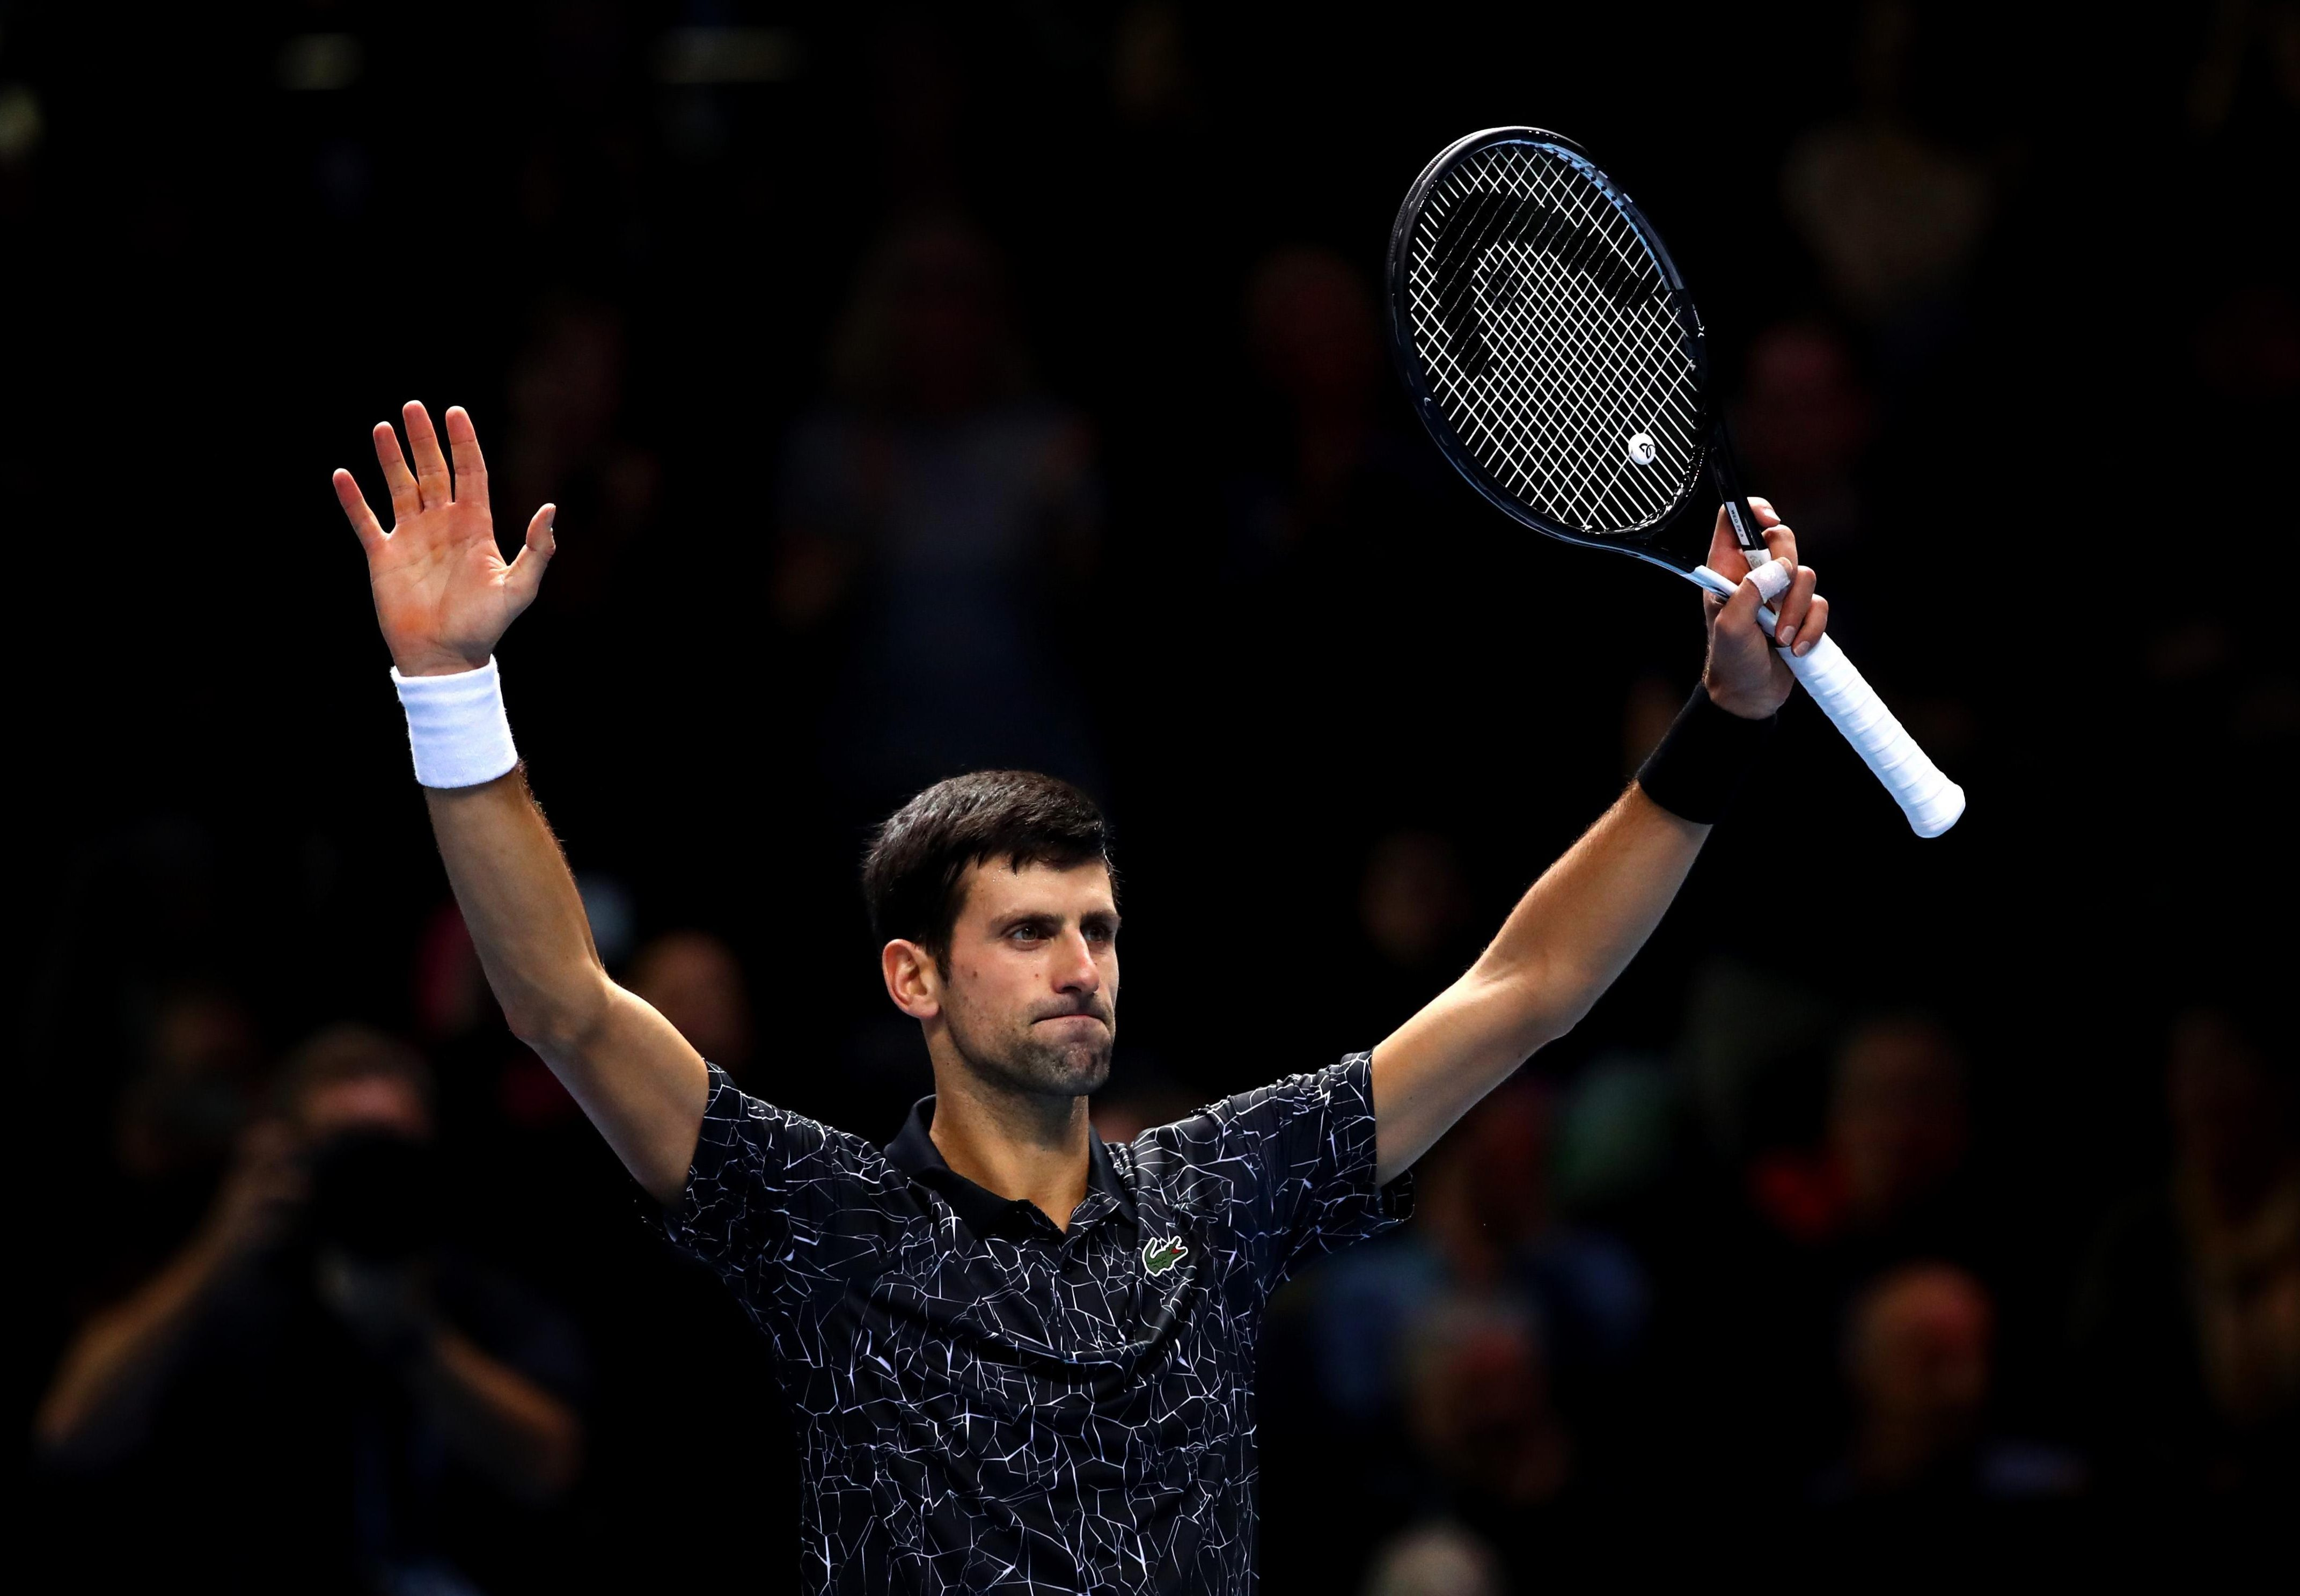 The 31-year-old superstar is currently ranked World No.1